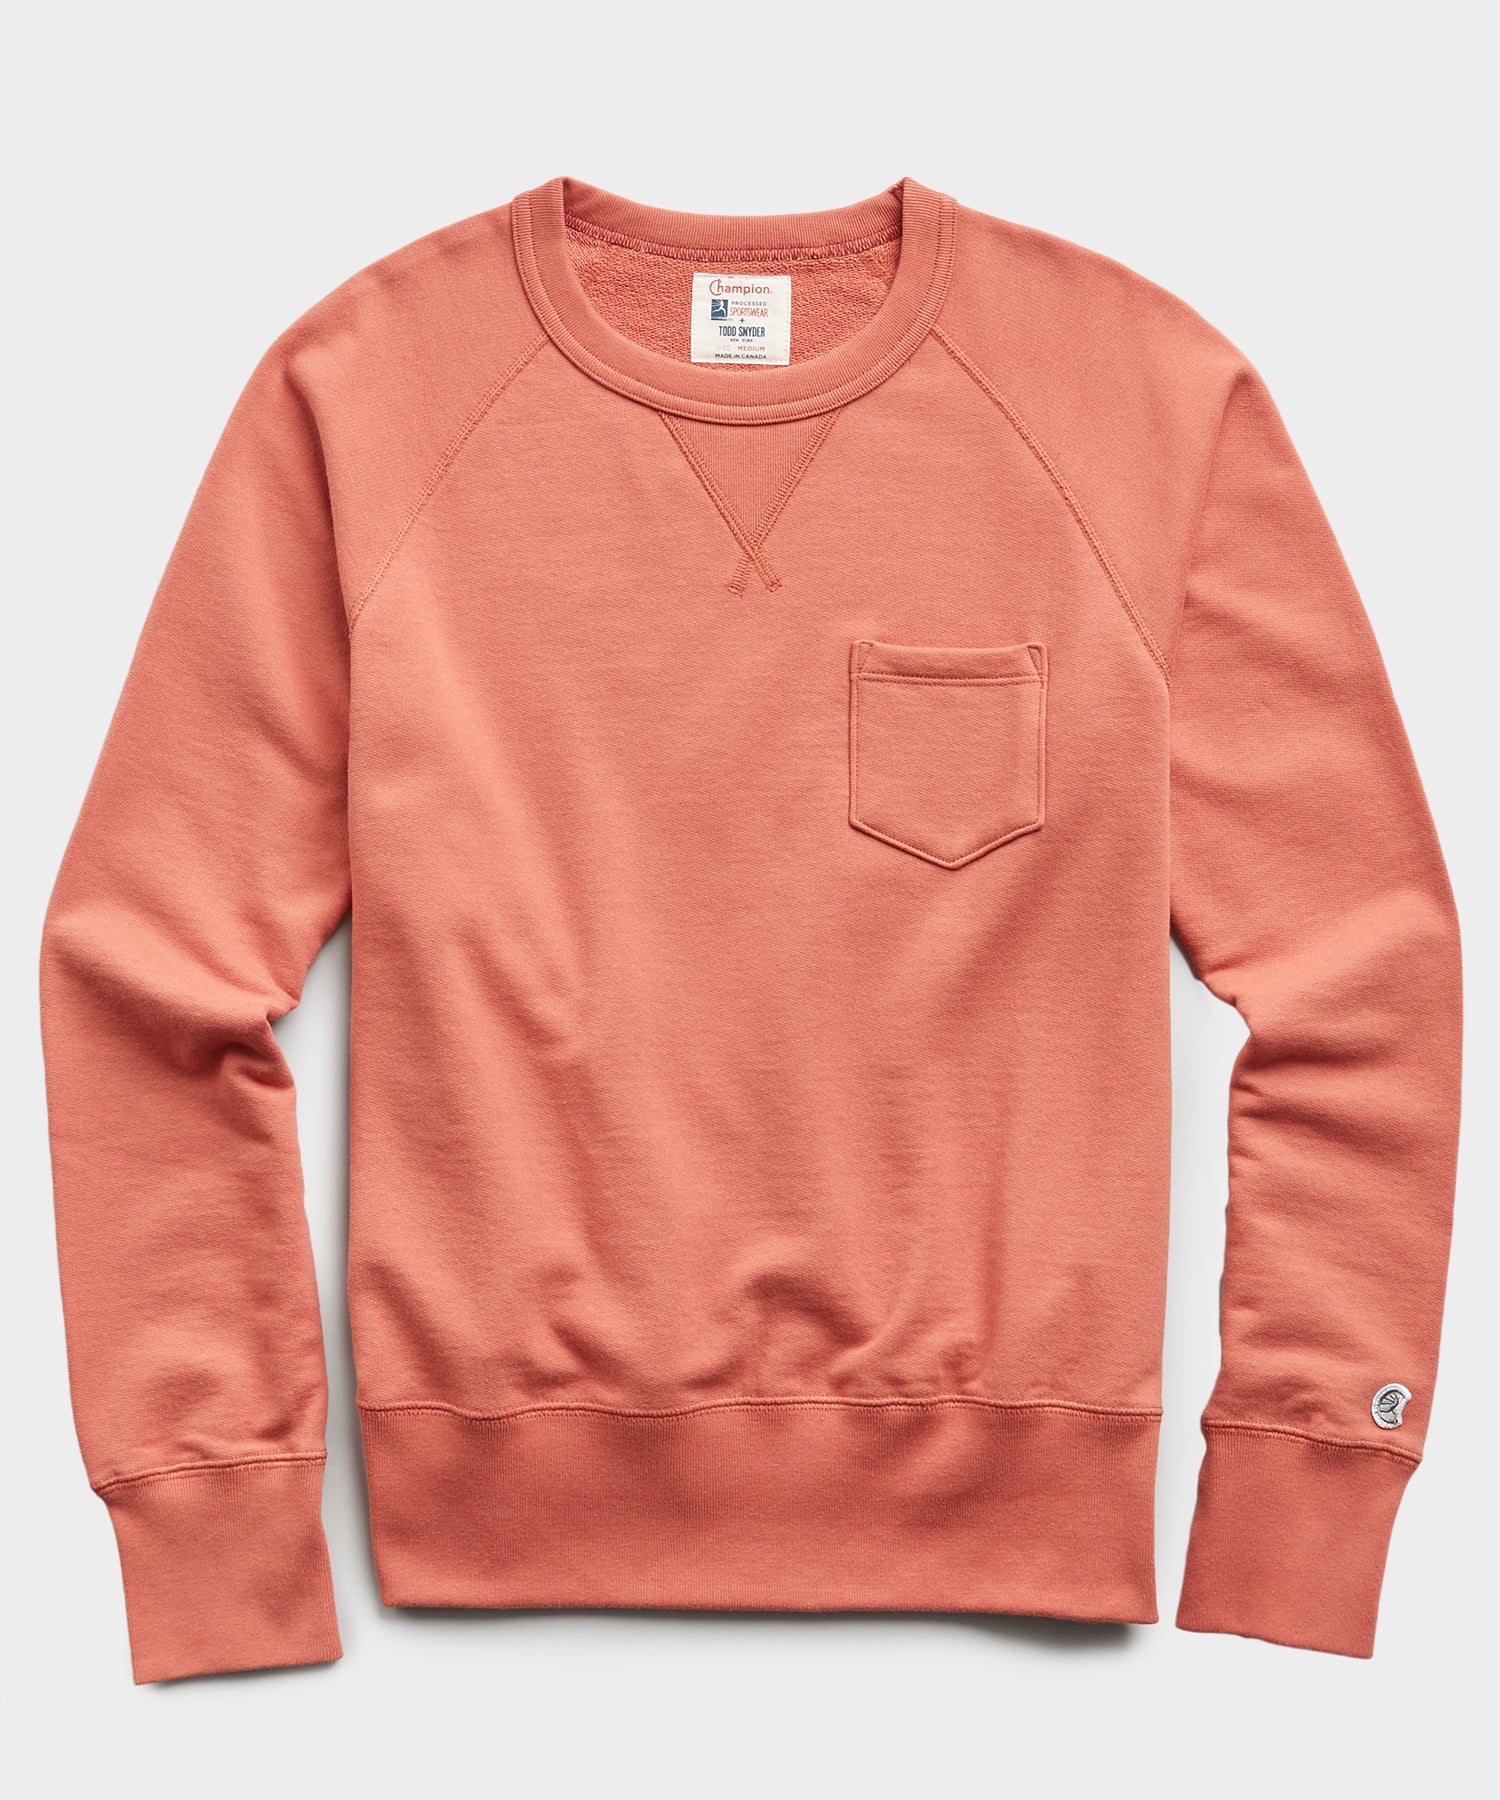 Lightweight Pocket Sweatshirt in Orange Russet